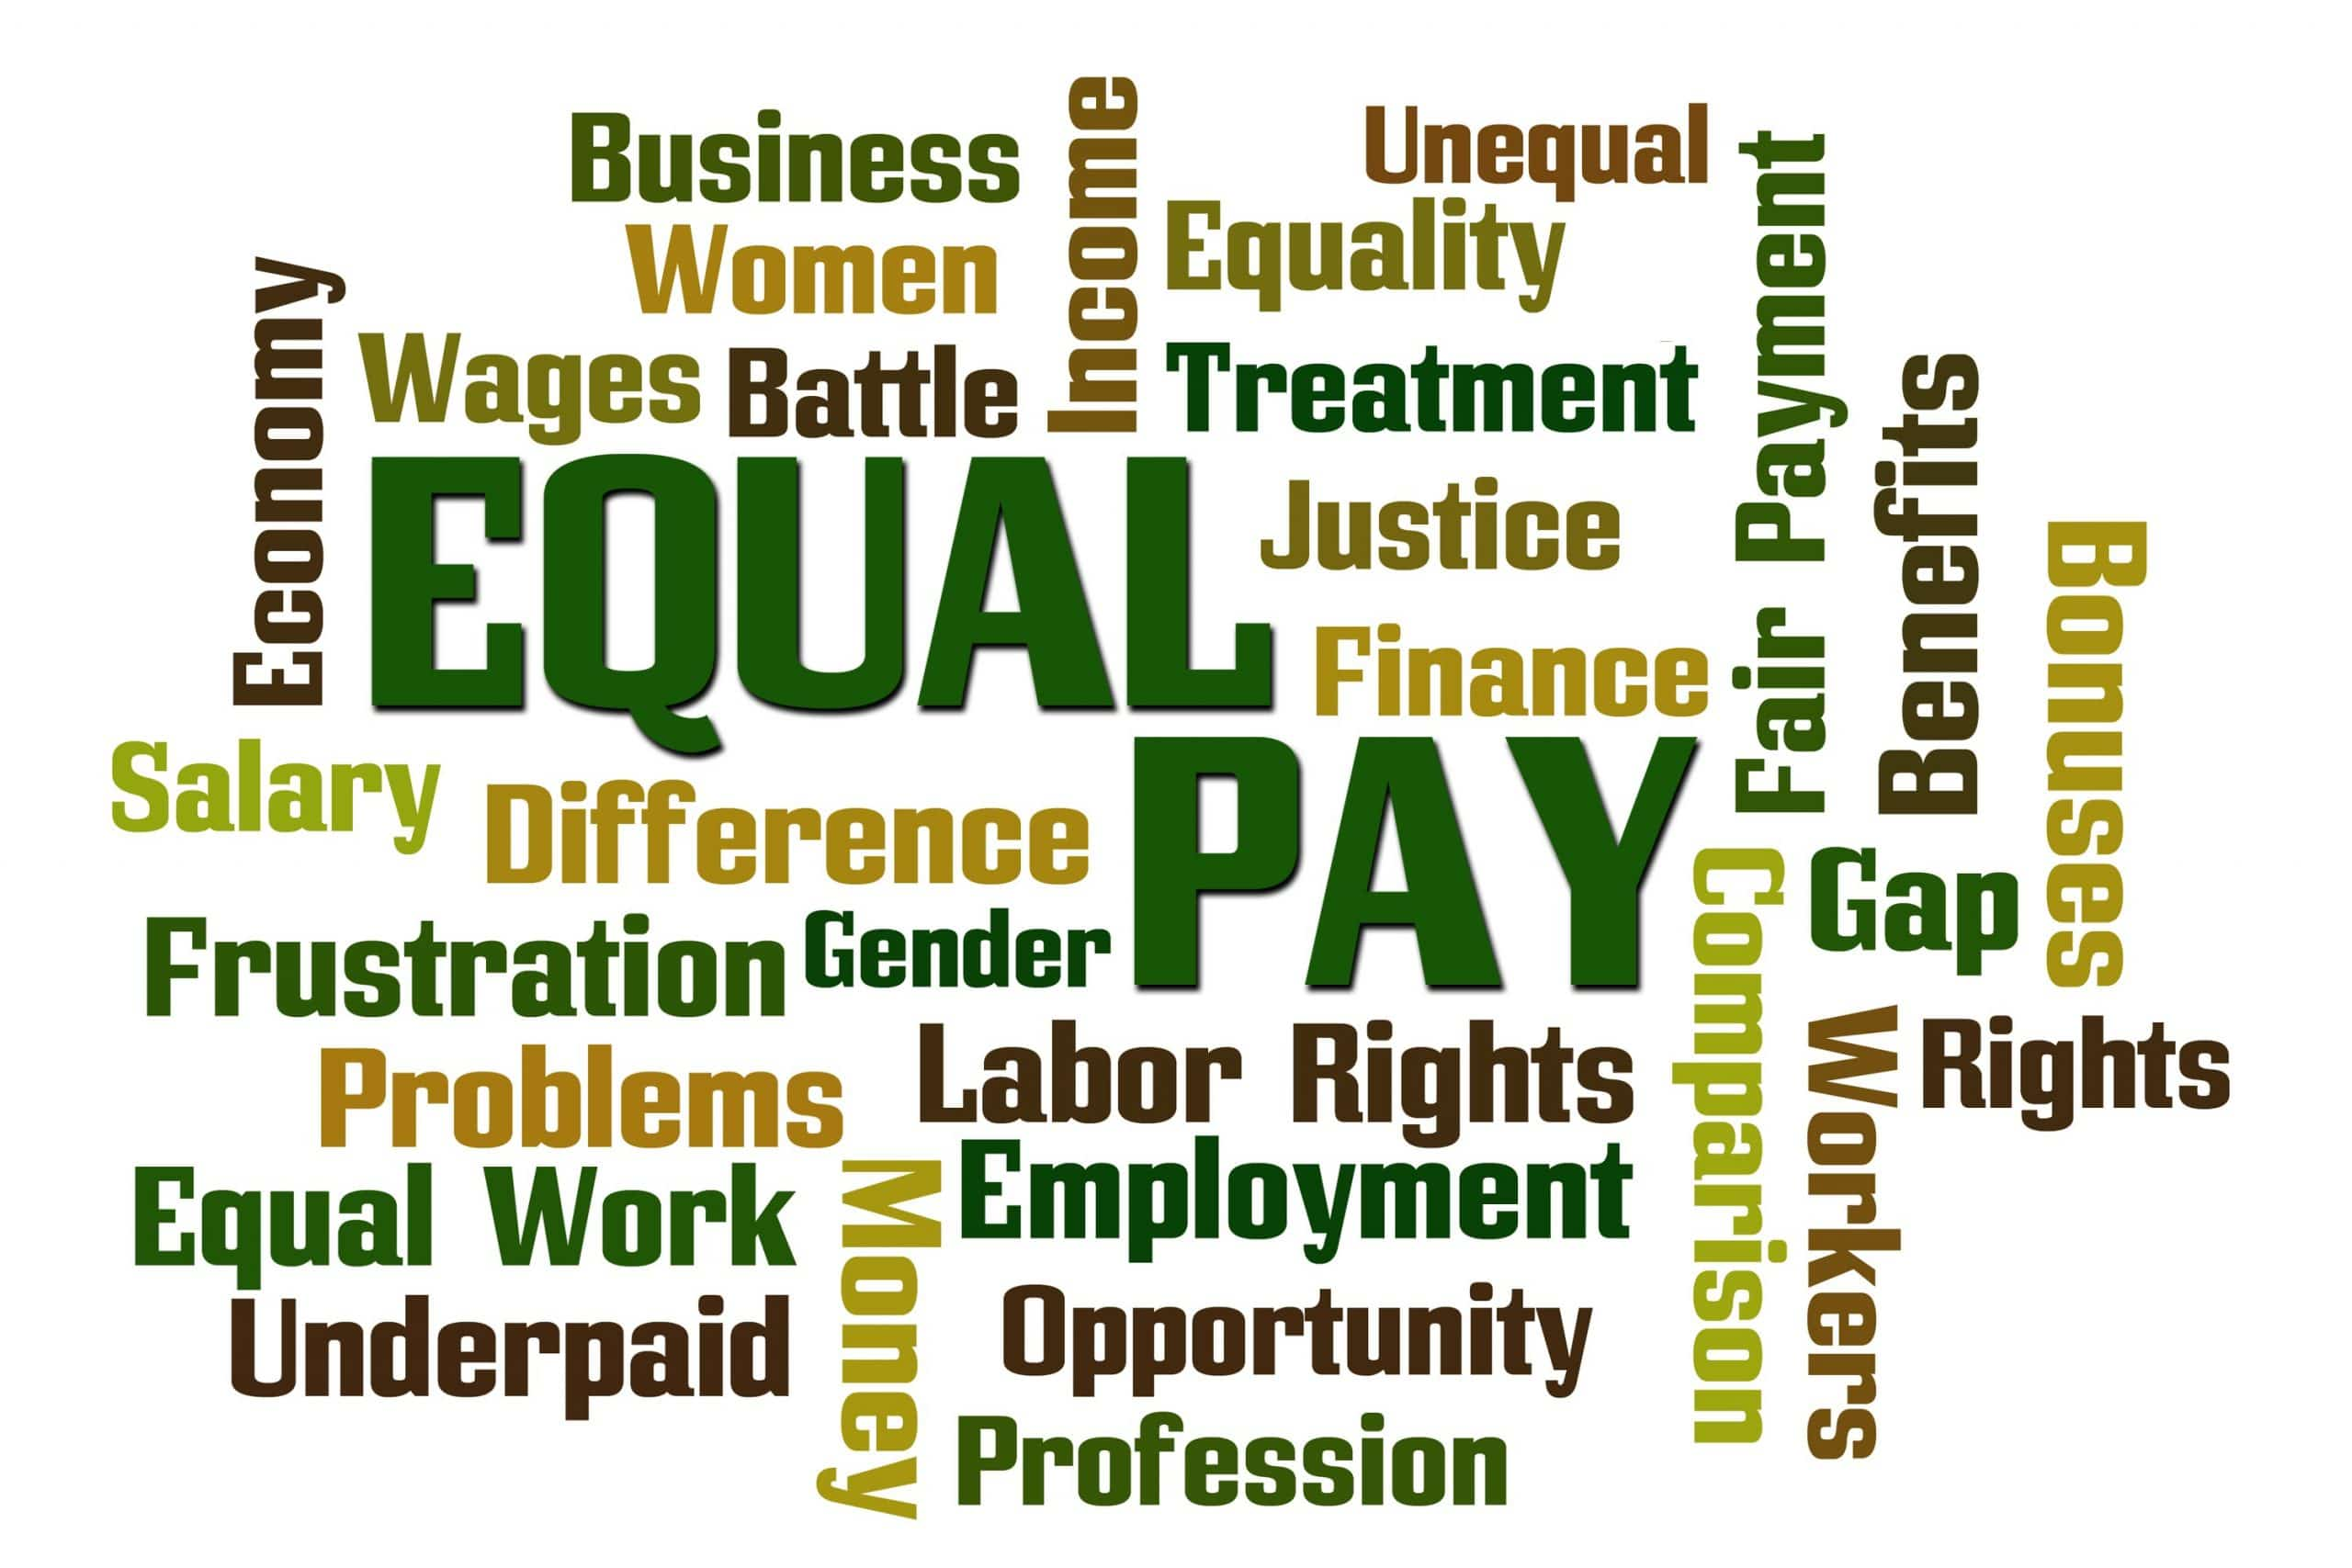 EEOC Closes Fiscal Year with a Decrease in Cases